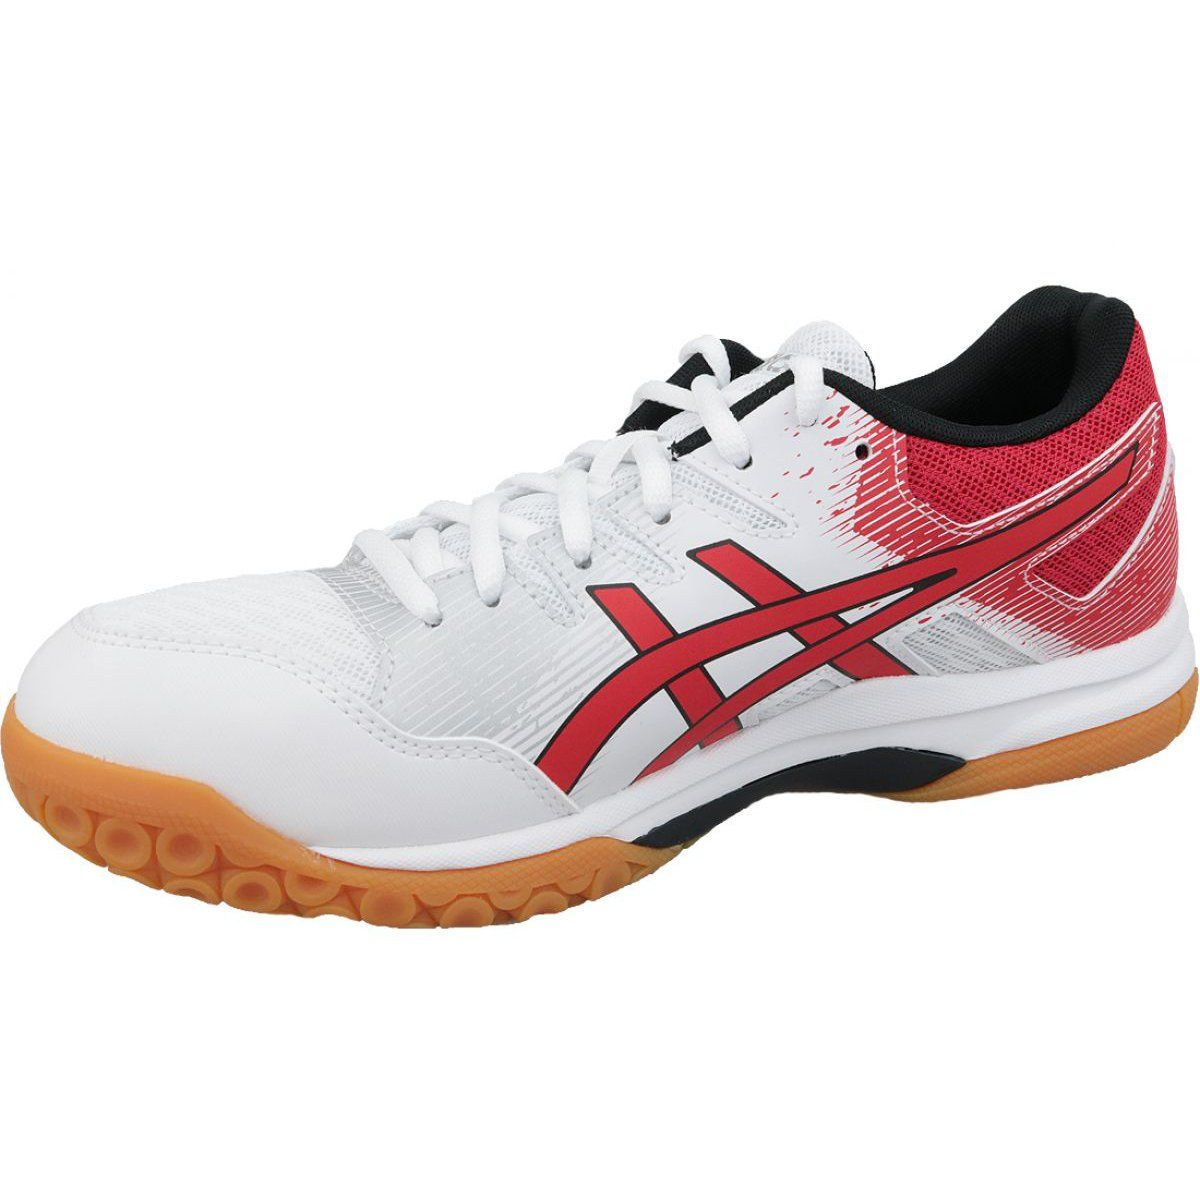 Buty Do Siatkowki Asics Gel Rocket 9 M 1071a030 101 Biale Biale Volleyball Shoes Asics Shoes